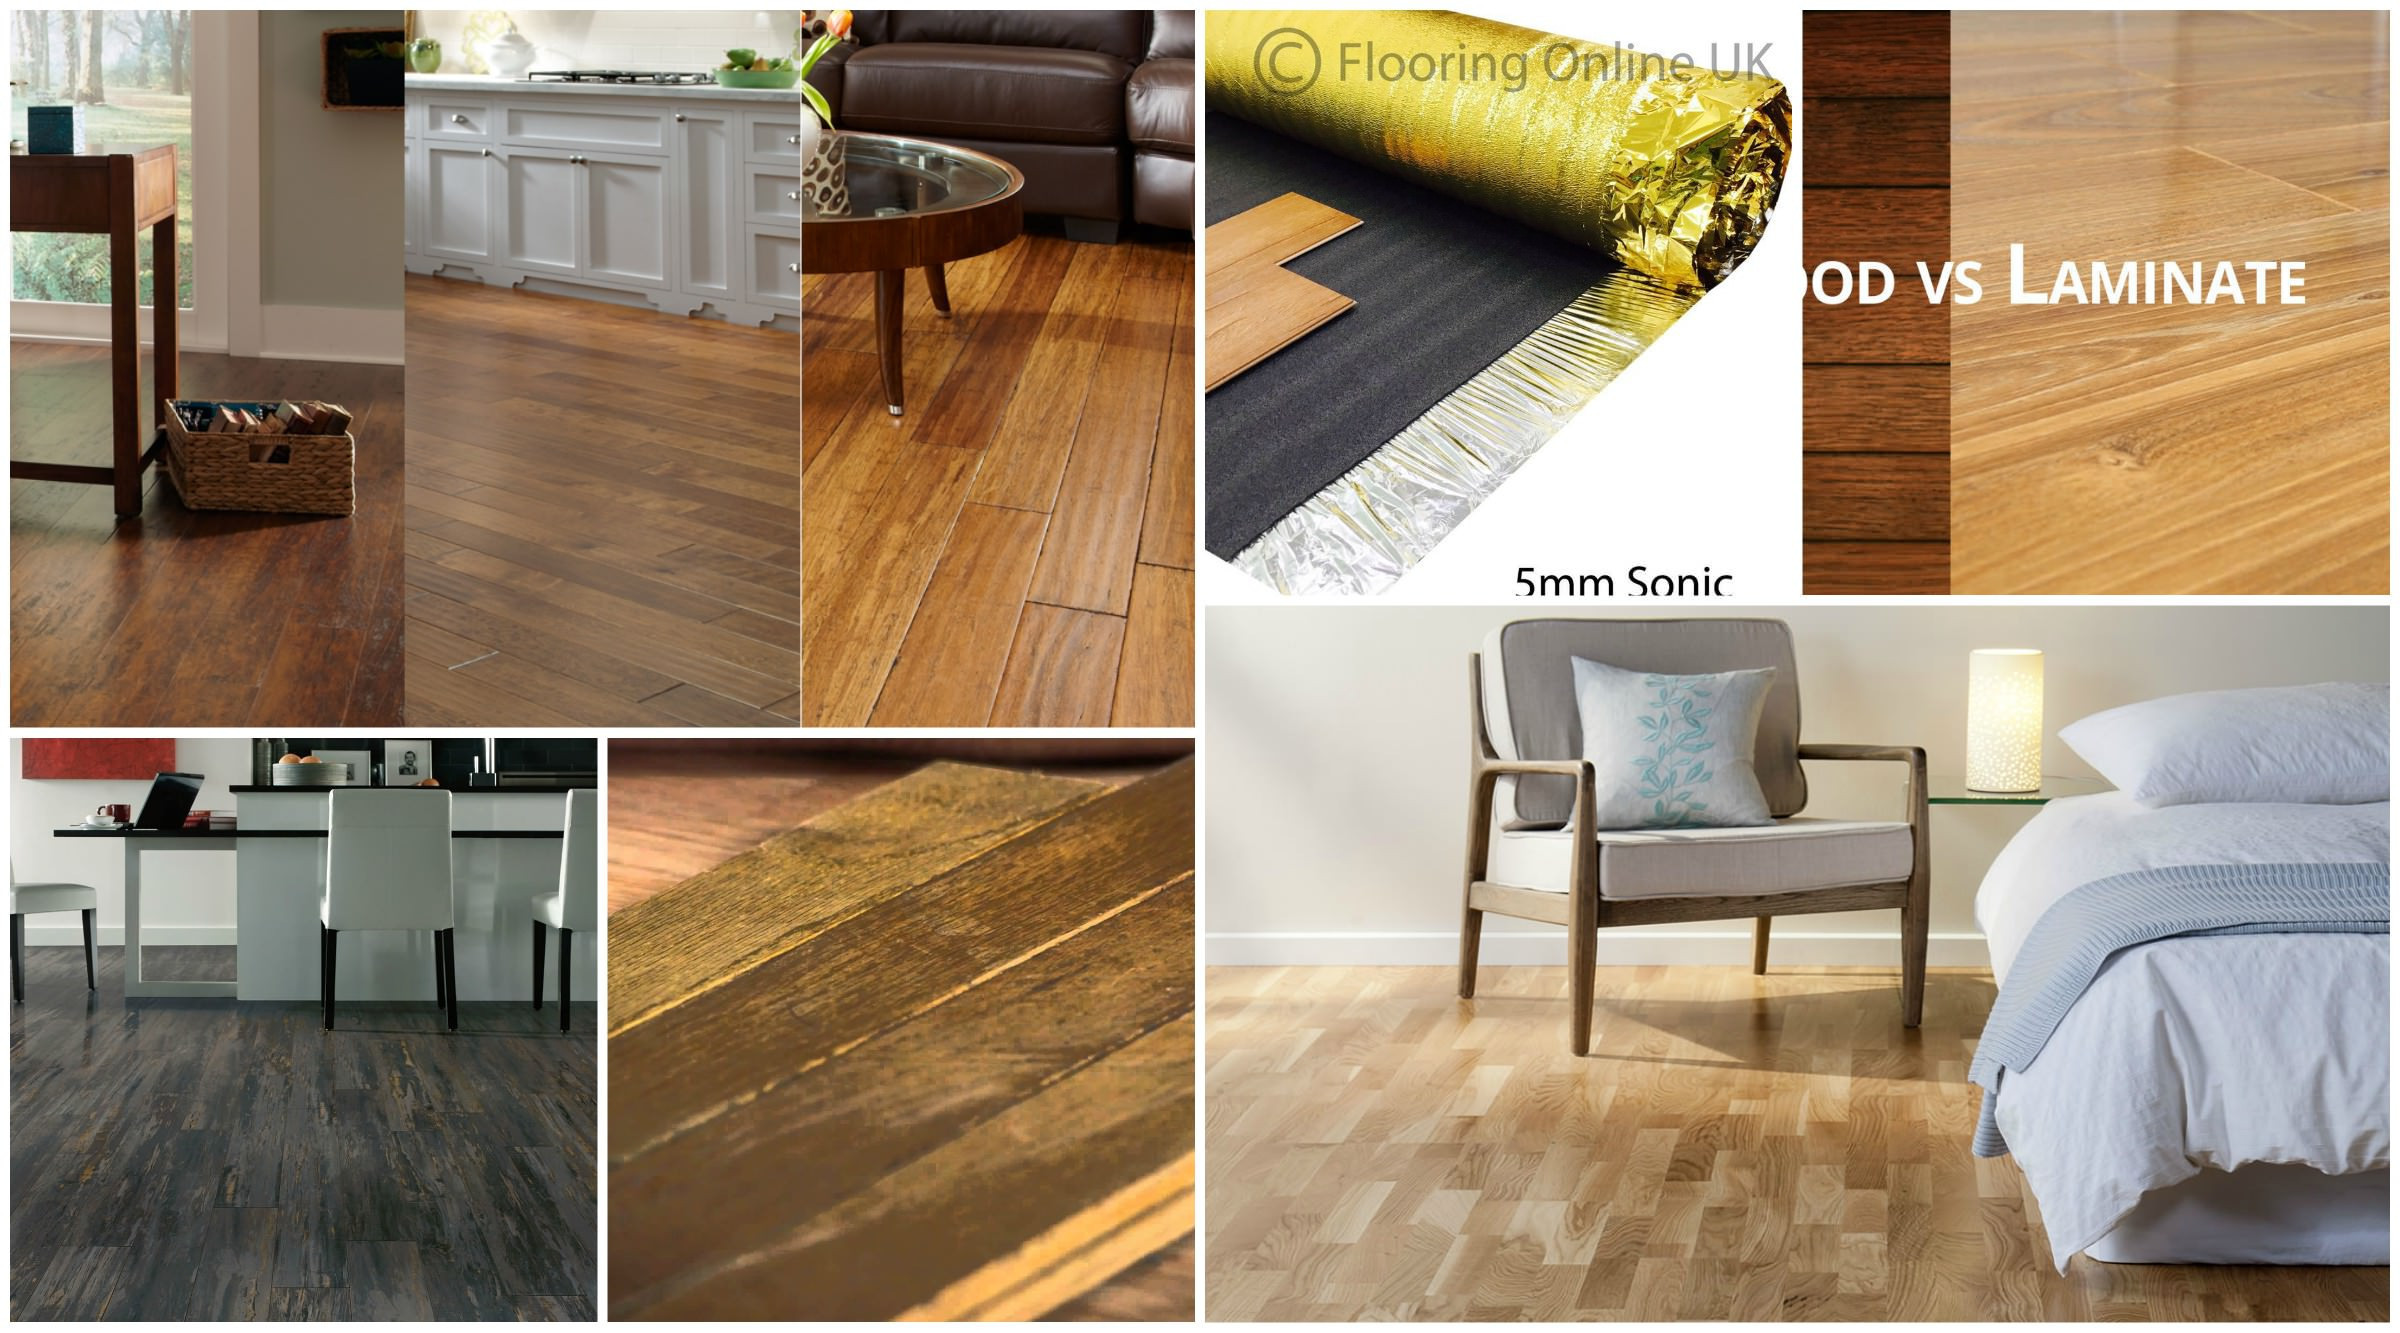 Hardwood Floor Upgrade Price Of Cheap Laminate Wood Flooring Also Beautiful Laminate Flooring Vs Throughout Cheap Laminate Wood Flooring Also Beautiful Laminate Flooring Vs Wood which E is the Better Lugenda